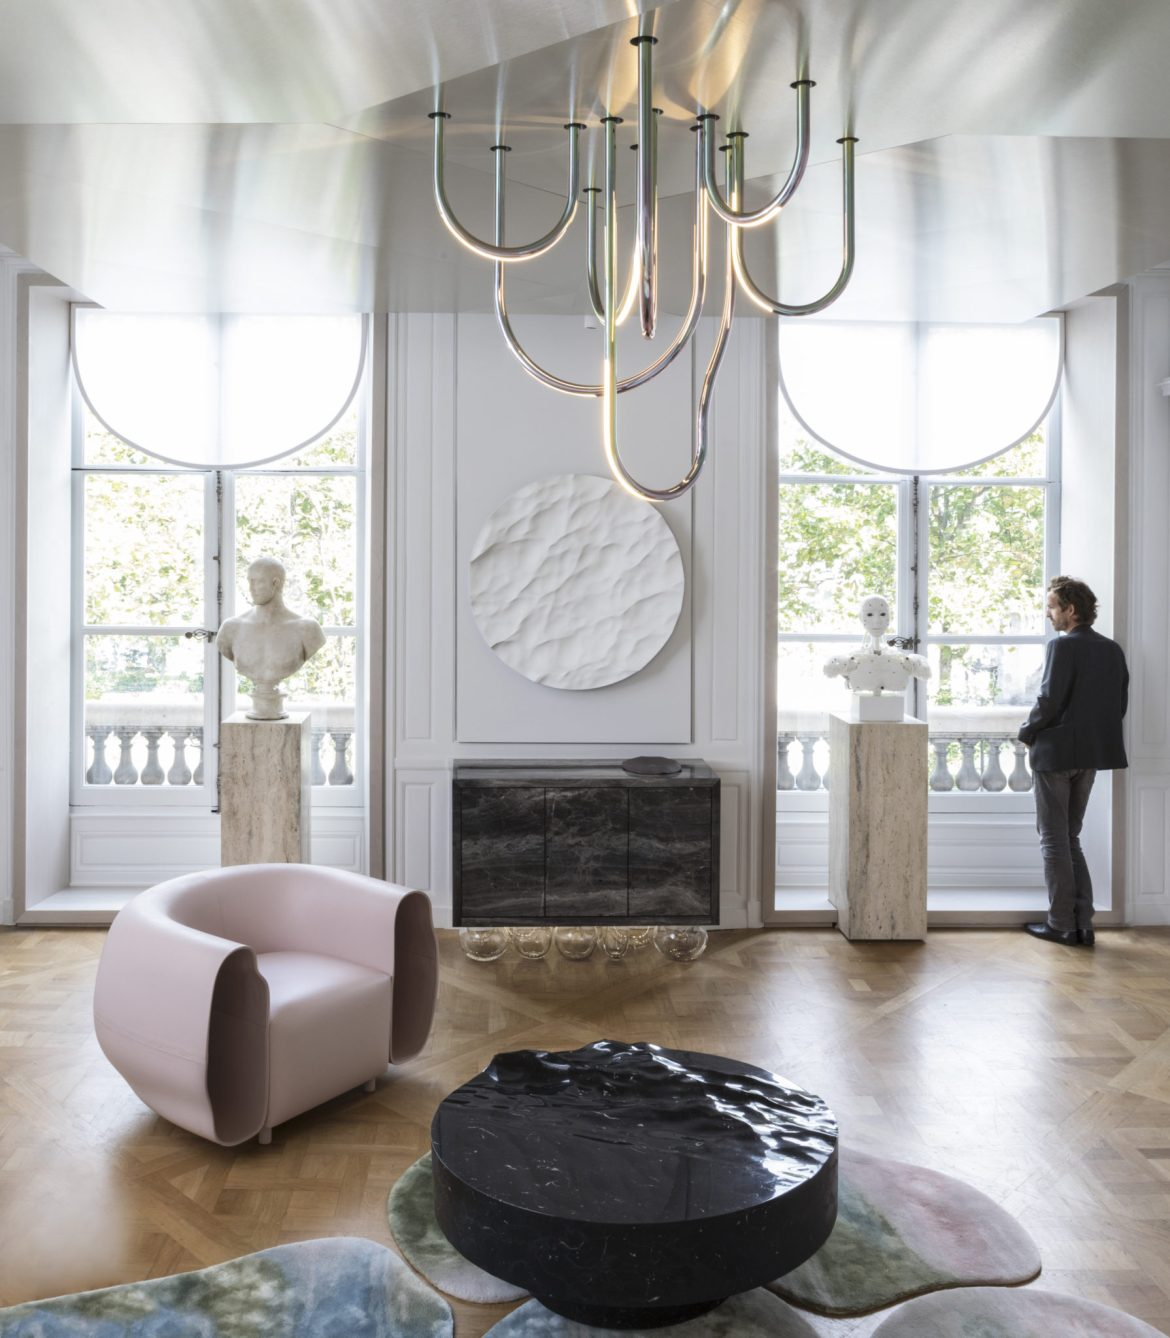 Paris Design Week, AD Intérieurs 2017, Mathieu Lehanneur, The marble room